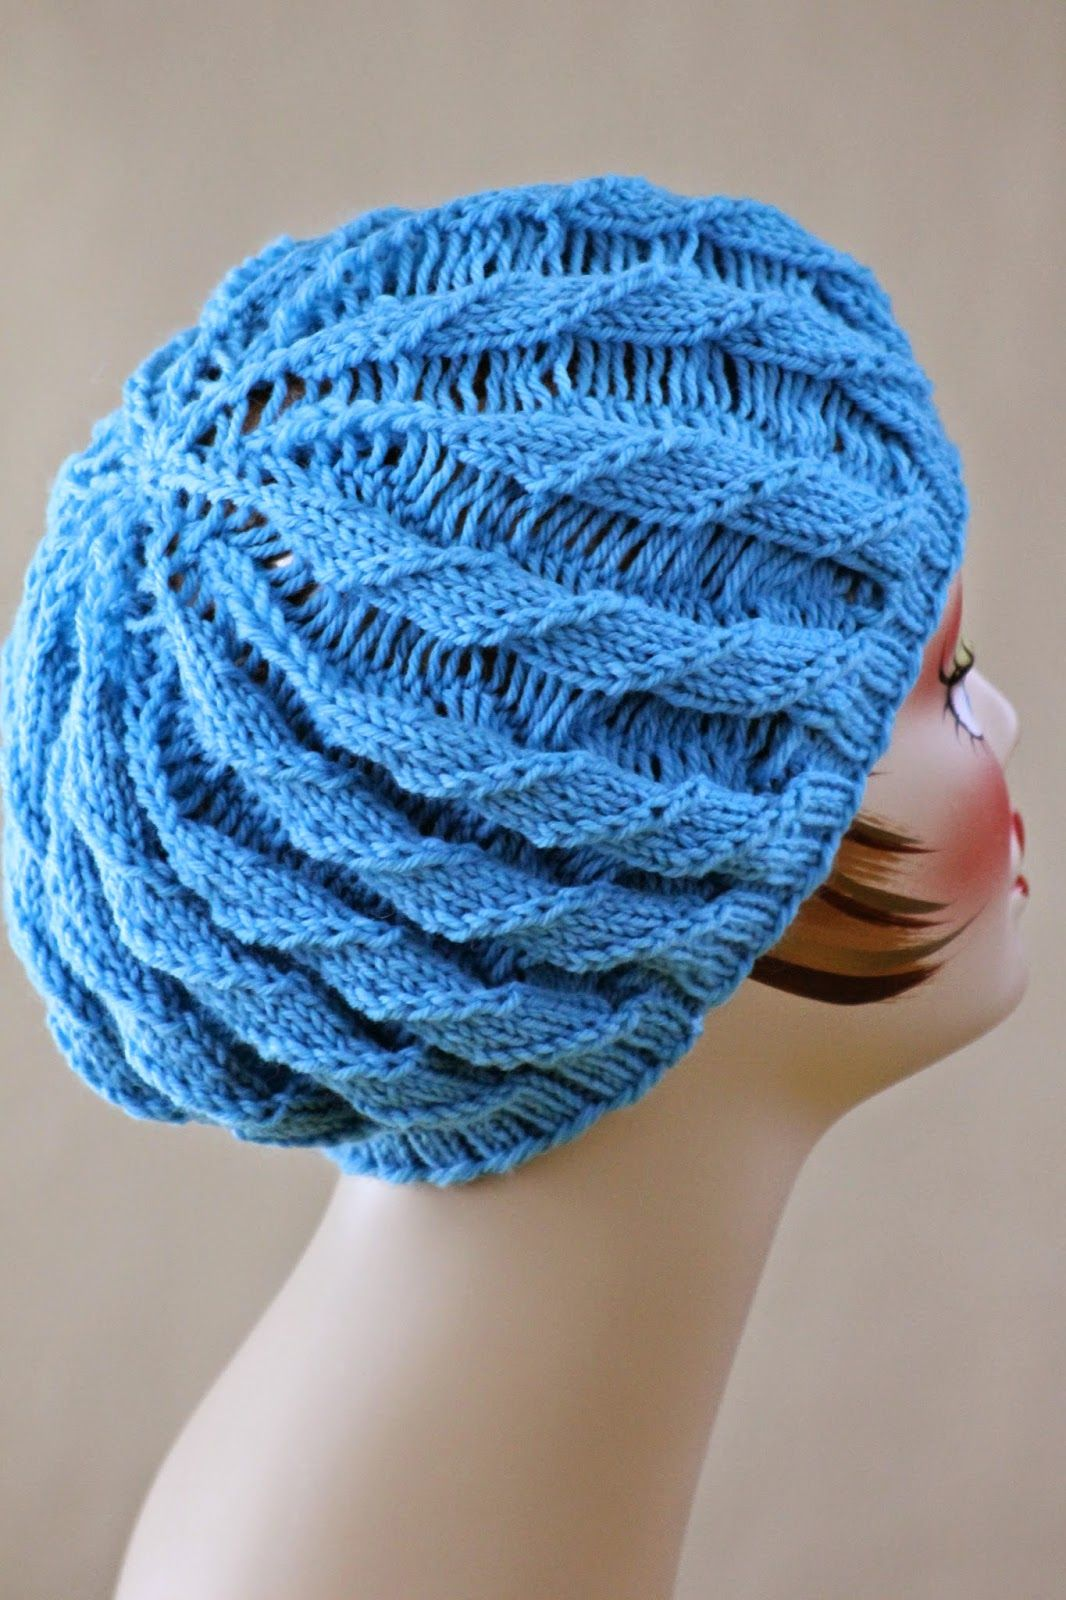 01257e50c29 Balls to the Walls Knits  Twilled Stripe Hat. Size 5 and 7 16